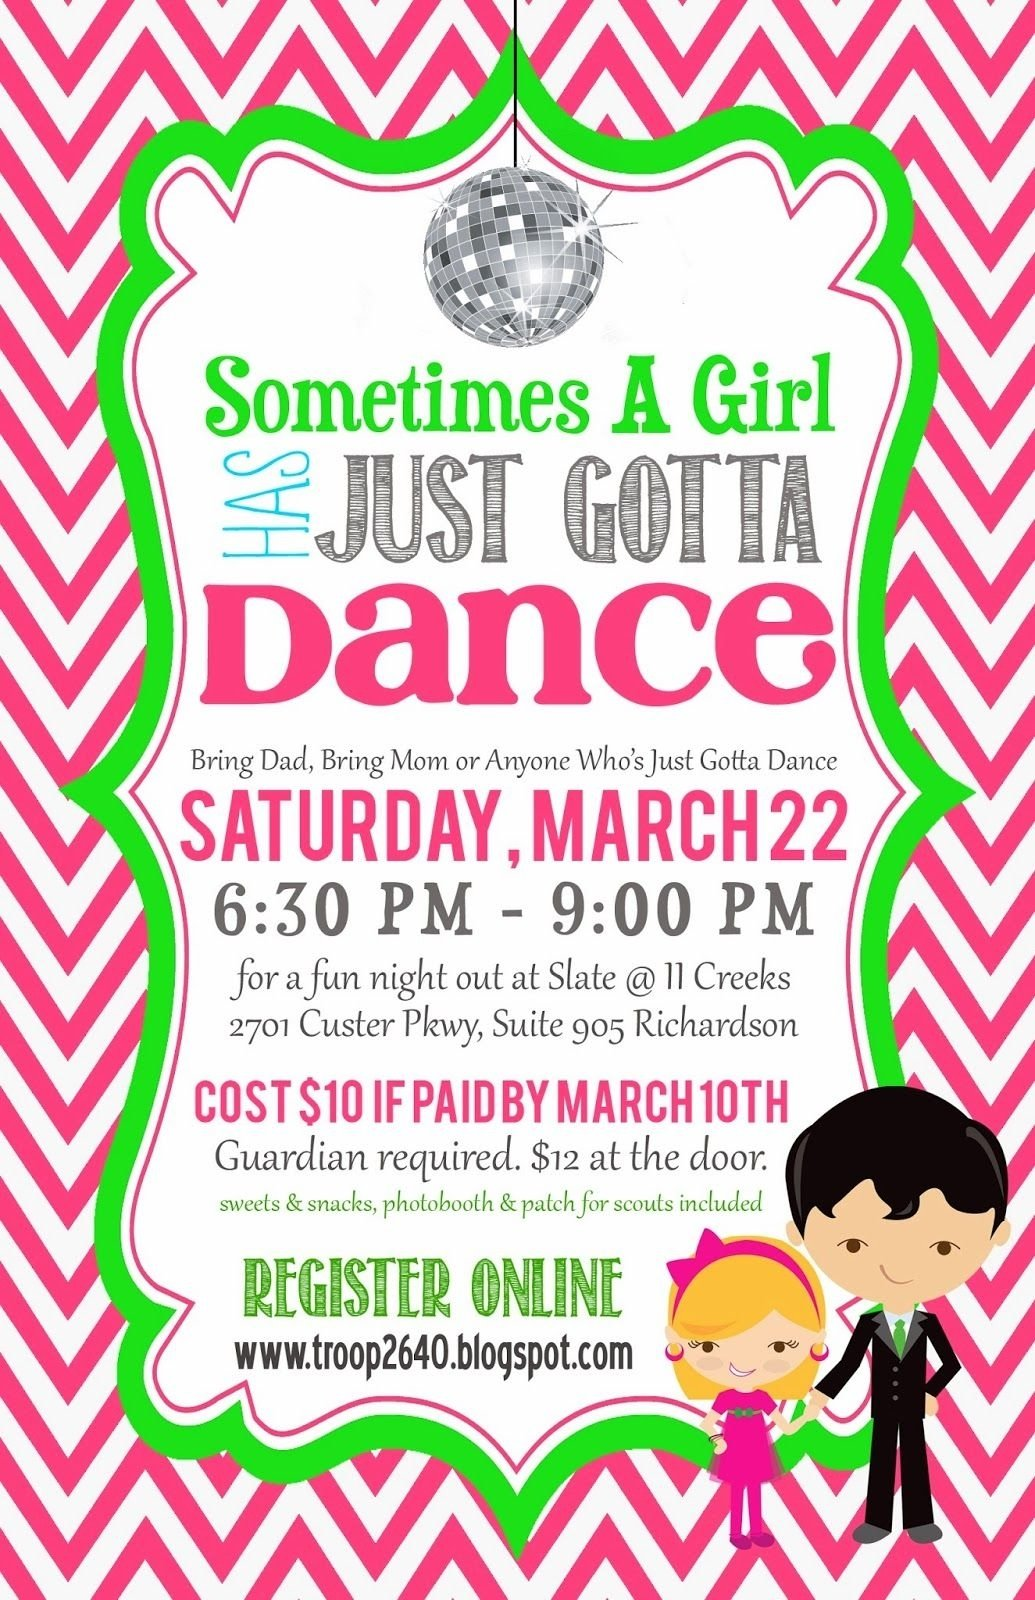 father daughter dance invite   father daughter dance   pinterest